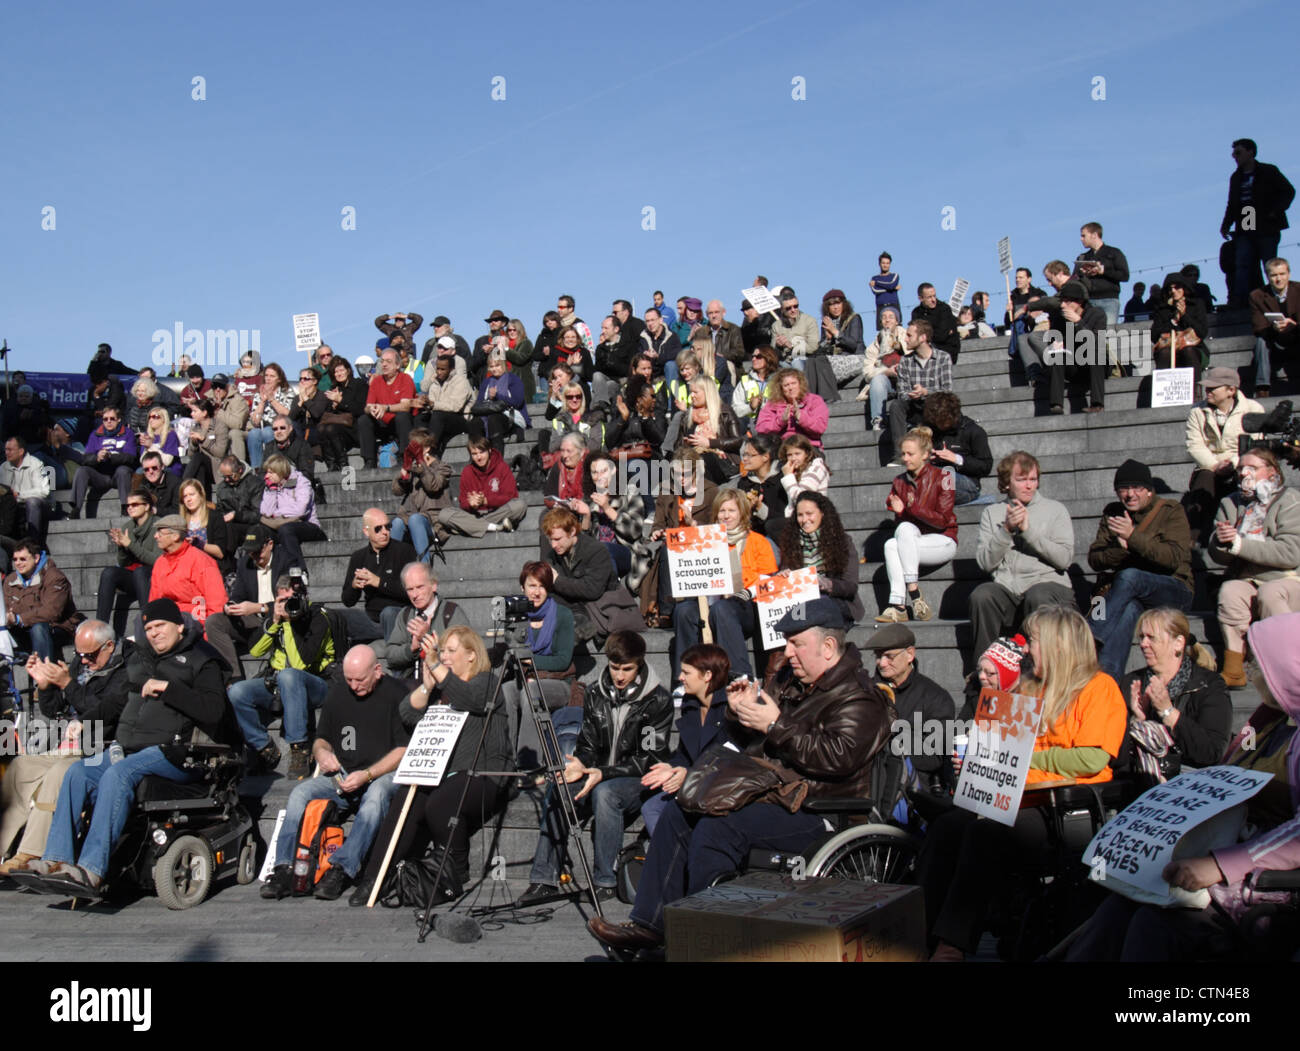 Hardest Hit Campaign 2011, with people protesting against welfare reform cutbacks to disabled people, outside City Stock Photo